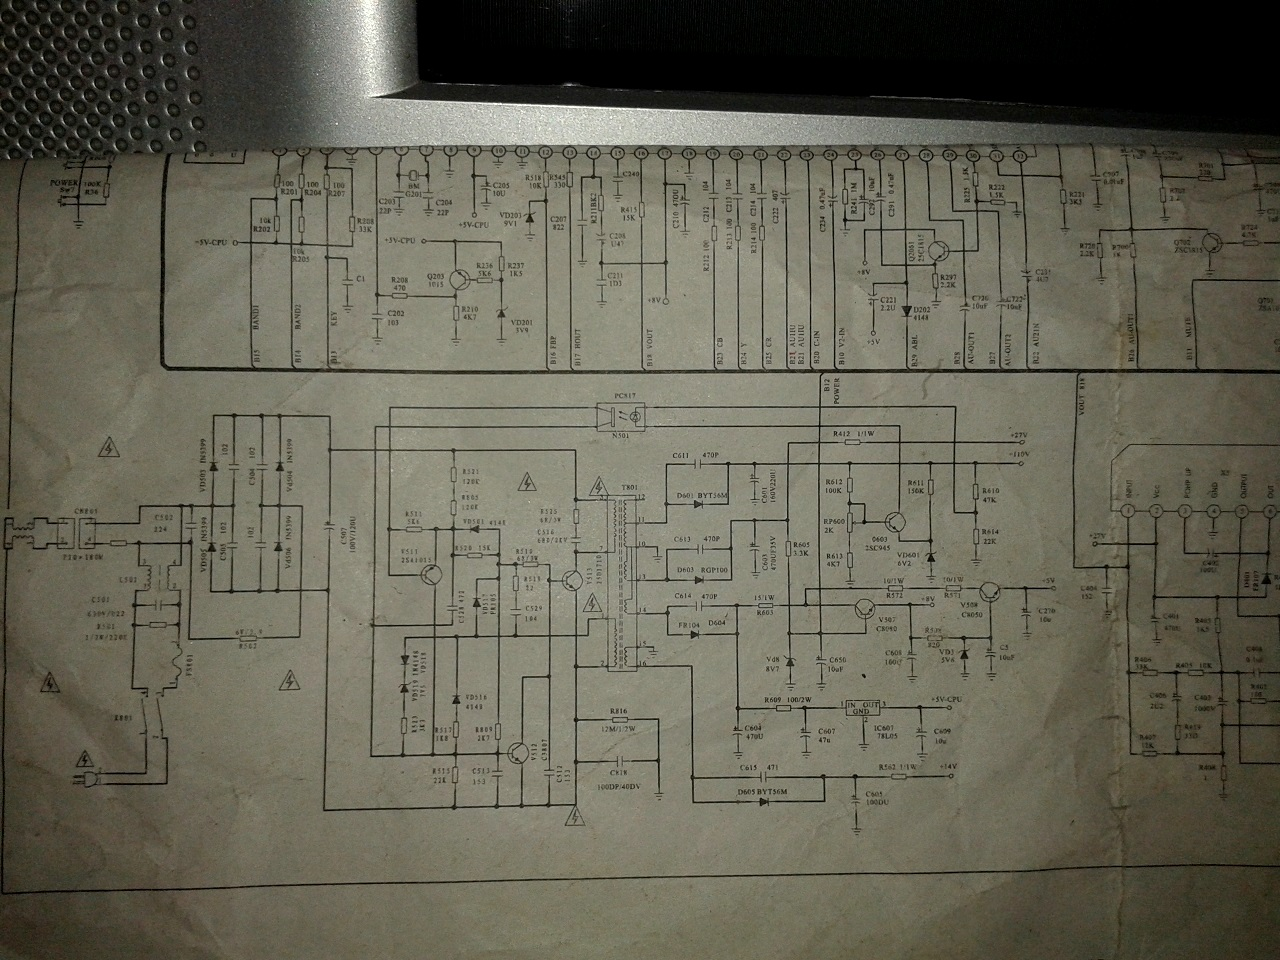 hight resolution of refer the circuit diagram